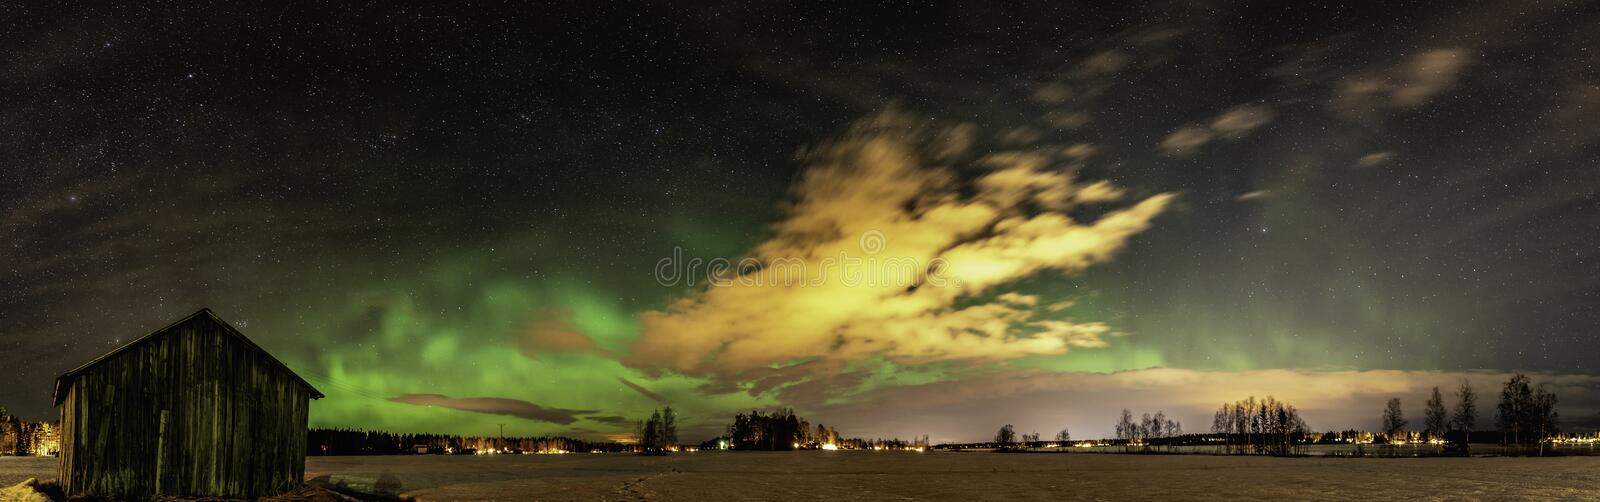 Panorama of Aurora and stars shine over abandoned shed standing alone in the field, deep autumn, winter and clear skies with come stock photo